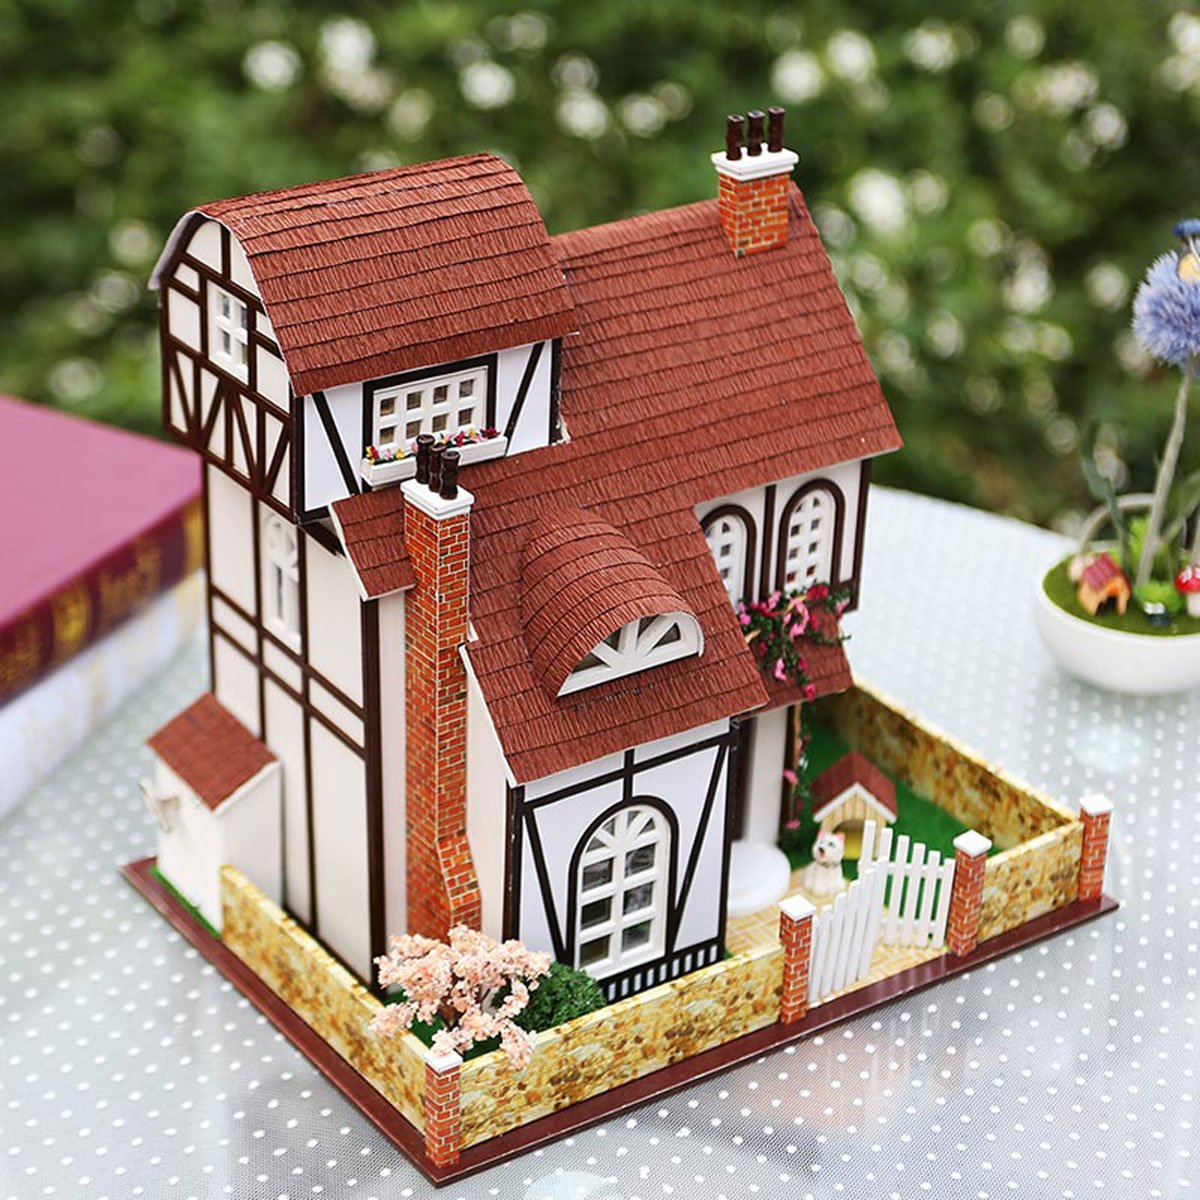 Flower Town Series Dollhouses Accessories Dolls Houses with Furniture /& LED /& Music Box Best Xmas Gift for Women and Girls Rylai 3D Puzzles Wooden Handmade Miniature Dollhouse DIY Kit w// Light